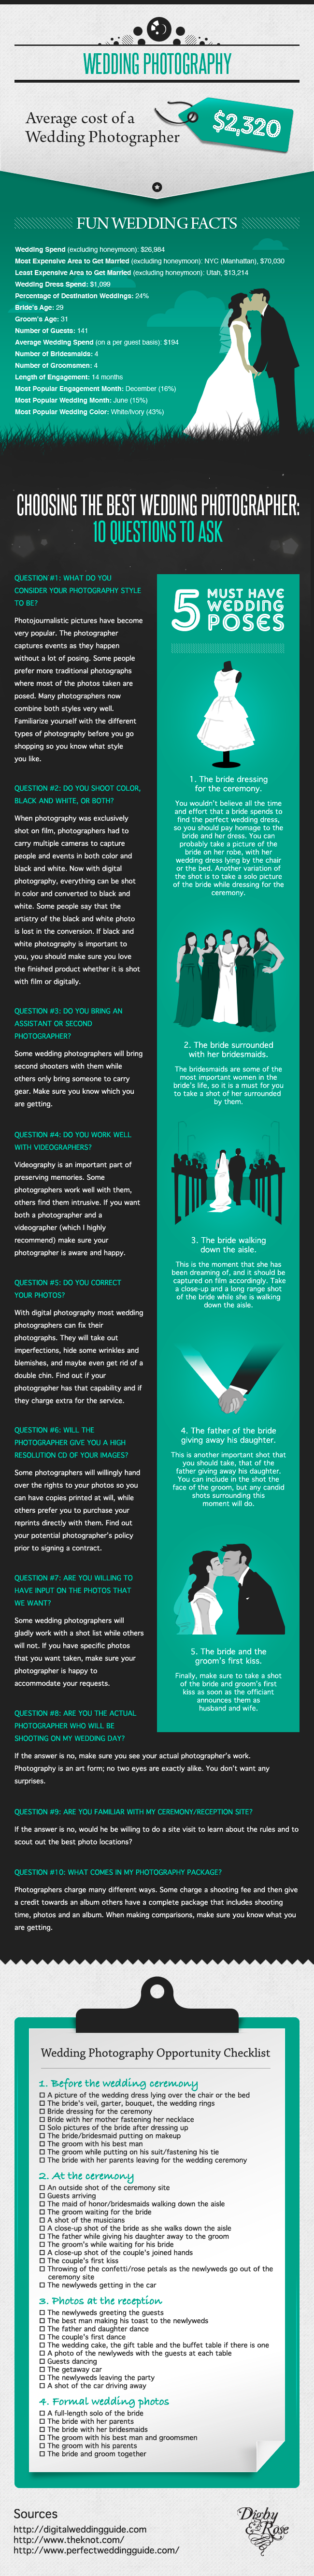 INFOGRAPHIC: Complete Guide to Choosing a Wedding Photographer